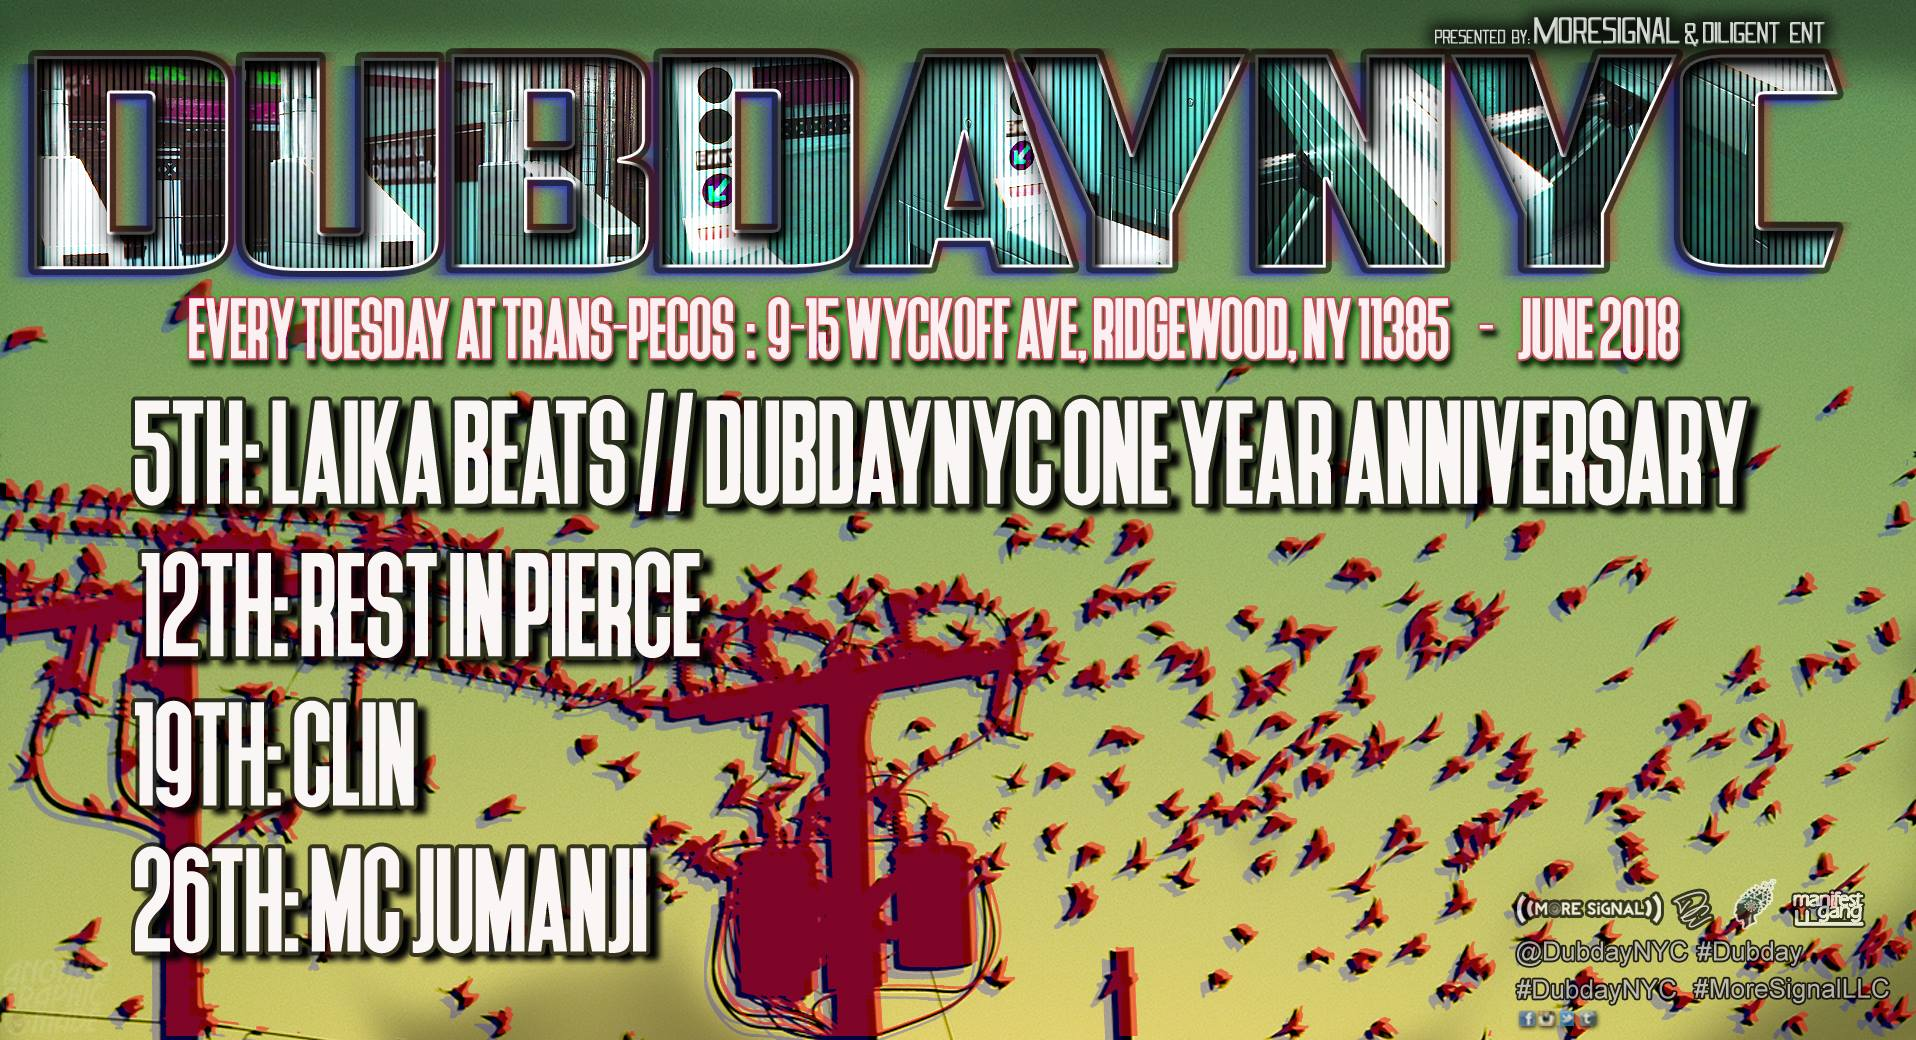 ::::: DUBDAY NYC ft. MC JUMANJI ::::: ::: Tuesday, June 26 :: 10pm - 2am ::: ::: Trans-Pecos :: 9-15 Wyckoff Ave, Ridgewood, NY ::: :: More Signal :: #DubdayNYC ::   ::: TICKETING ::: $10 : Online Presale [Card Only : Guaranteed Entry] $10 : Door GA [Cash Only] This Event is All Ages   ::: LINEUP :::  :: MC Jumanji :: : AmericanGrime :  https://soundcloud.com/mcjumanji   :: Seven D :: : Dubday MIA :  : Michael Savant :  : Timbo Slice :  :: SUPPORT TBA ::  :: OPEN DECKS :: : 140 U.K. Grime/U.K. Dubstep :   ::: PHOTOGRAPHY ::: Nachturnal Images   ::: LIVE VISUALS ::: Kawaii Visuals   ::: MERCH ::: Bankduds   ::::: MORE TBA! :::::